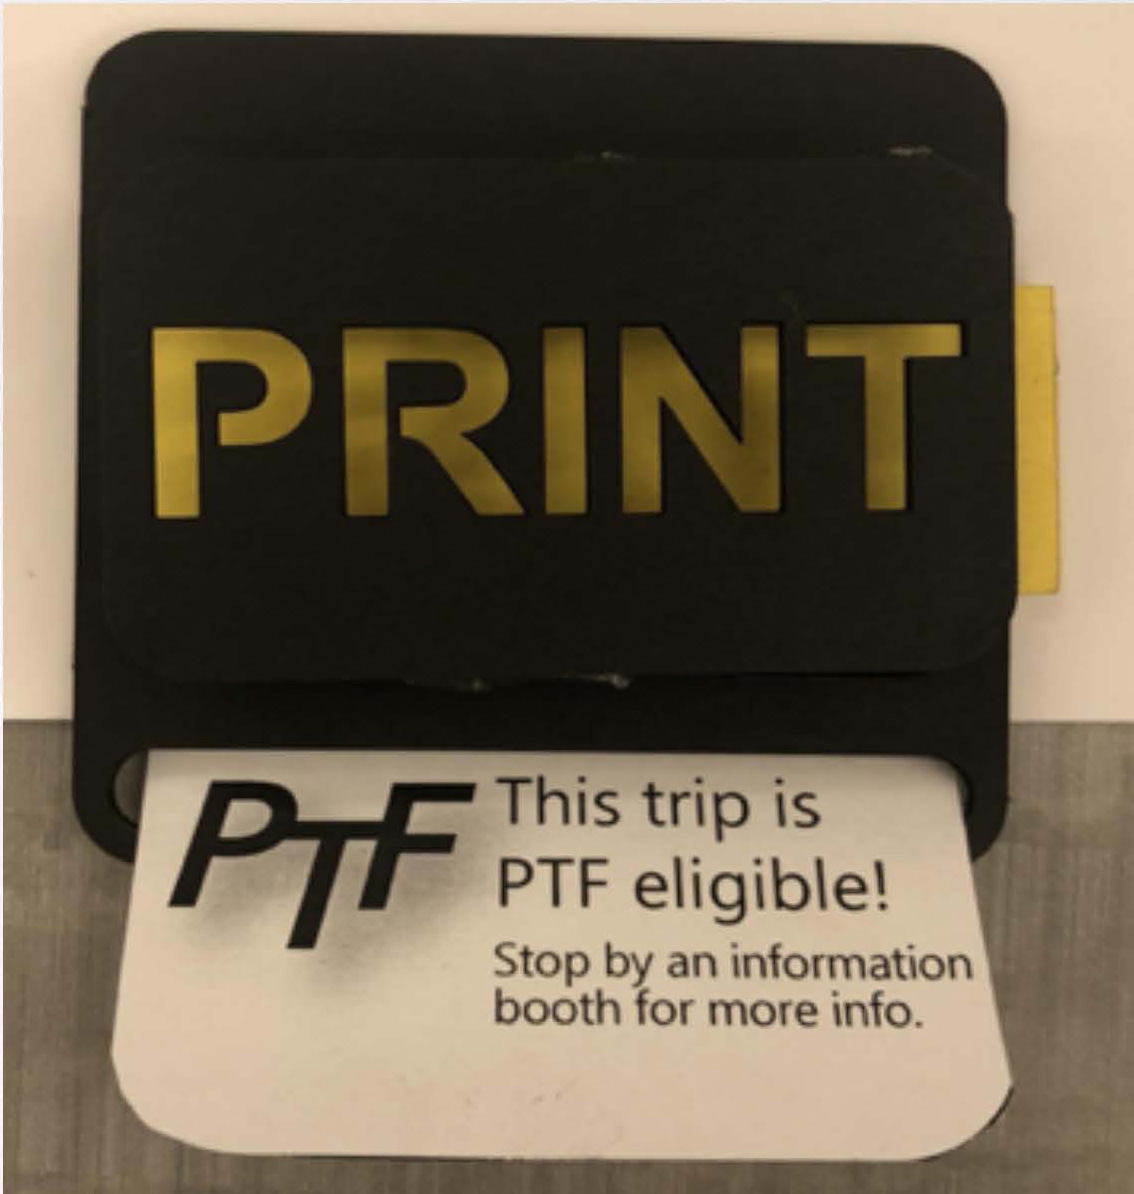 KNOW WHAT YOUR USERS WANT - On the end of each printed schedule, there will be a promoting message for the PTF pass to reinforce user's awareness.On the other hand, the buttons help stakeholders to collect data —- how many user learn about each event from this display.